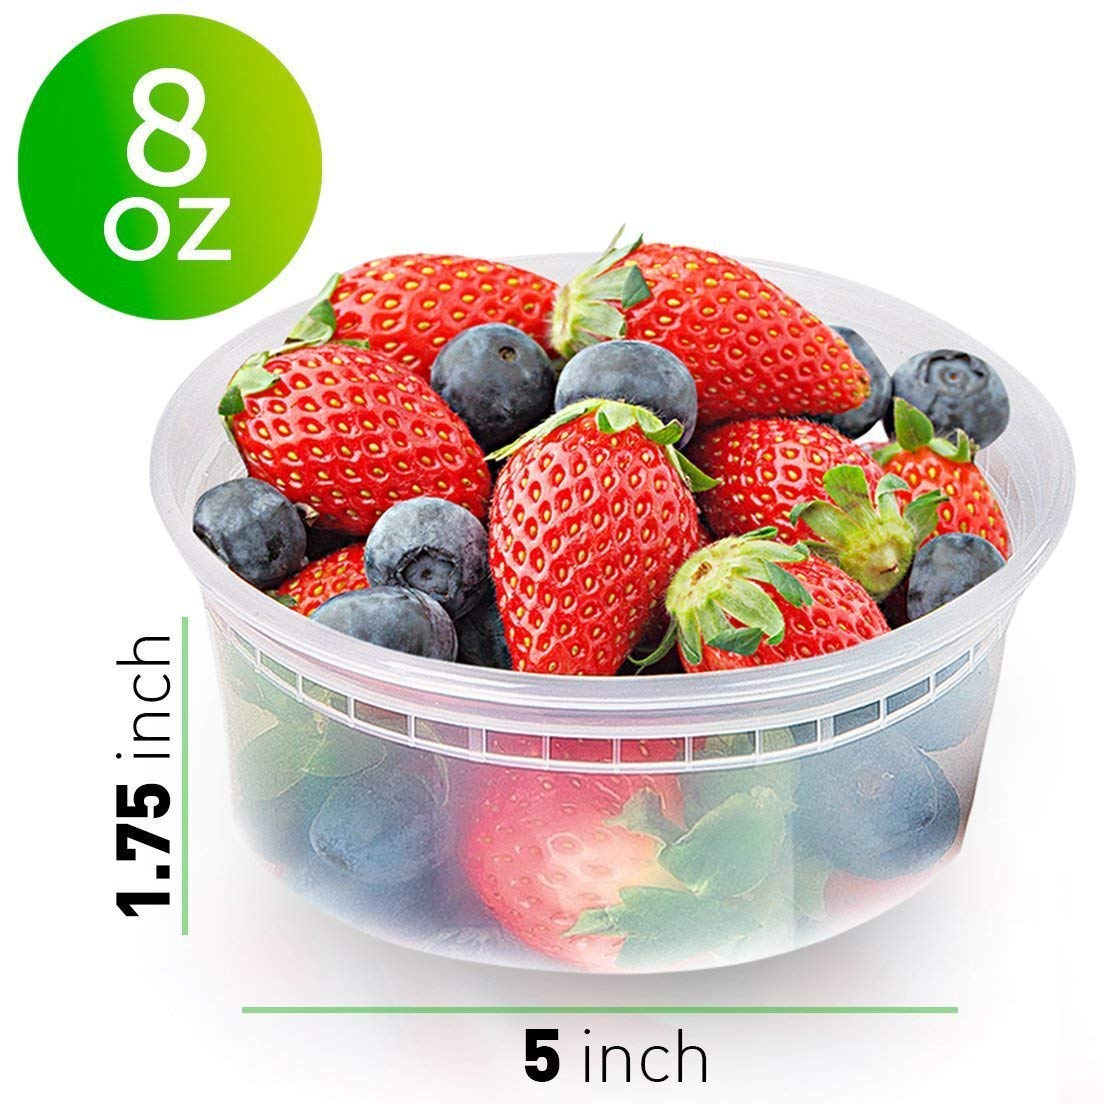 50pk 8oz Small Plastic Containers with Lids - Slime Containers with lids Freezer Containers Deli Containers with Lids - Food Containers Meal Prep Food Prep Containers Plastic Food Containers with Lids by Prep Naturals (Image #2)